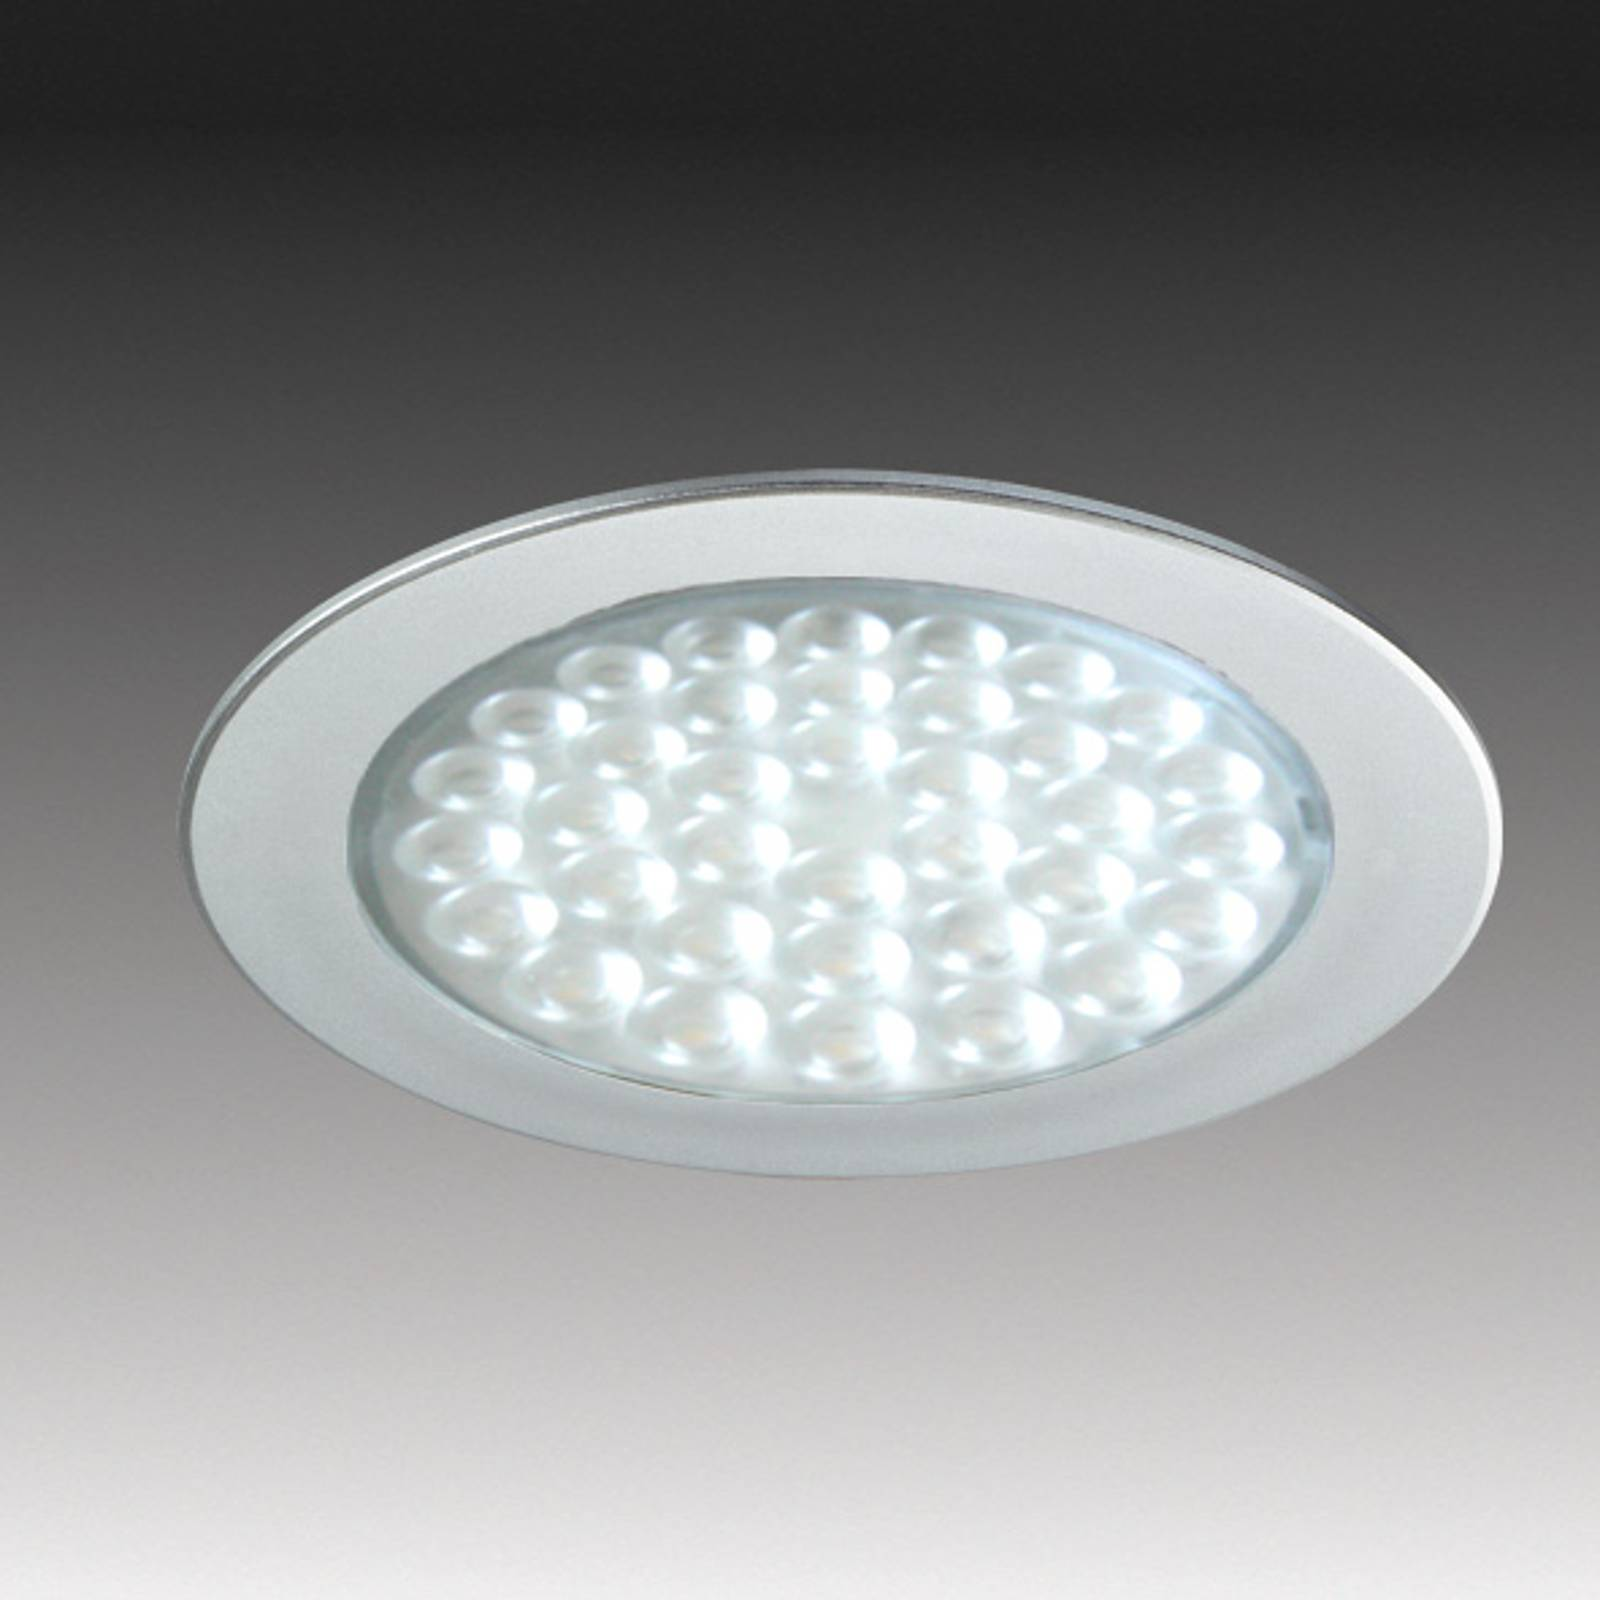 R 68 LED recessed light in stainless steel look from HERA